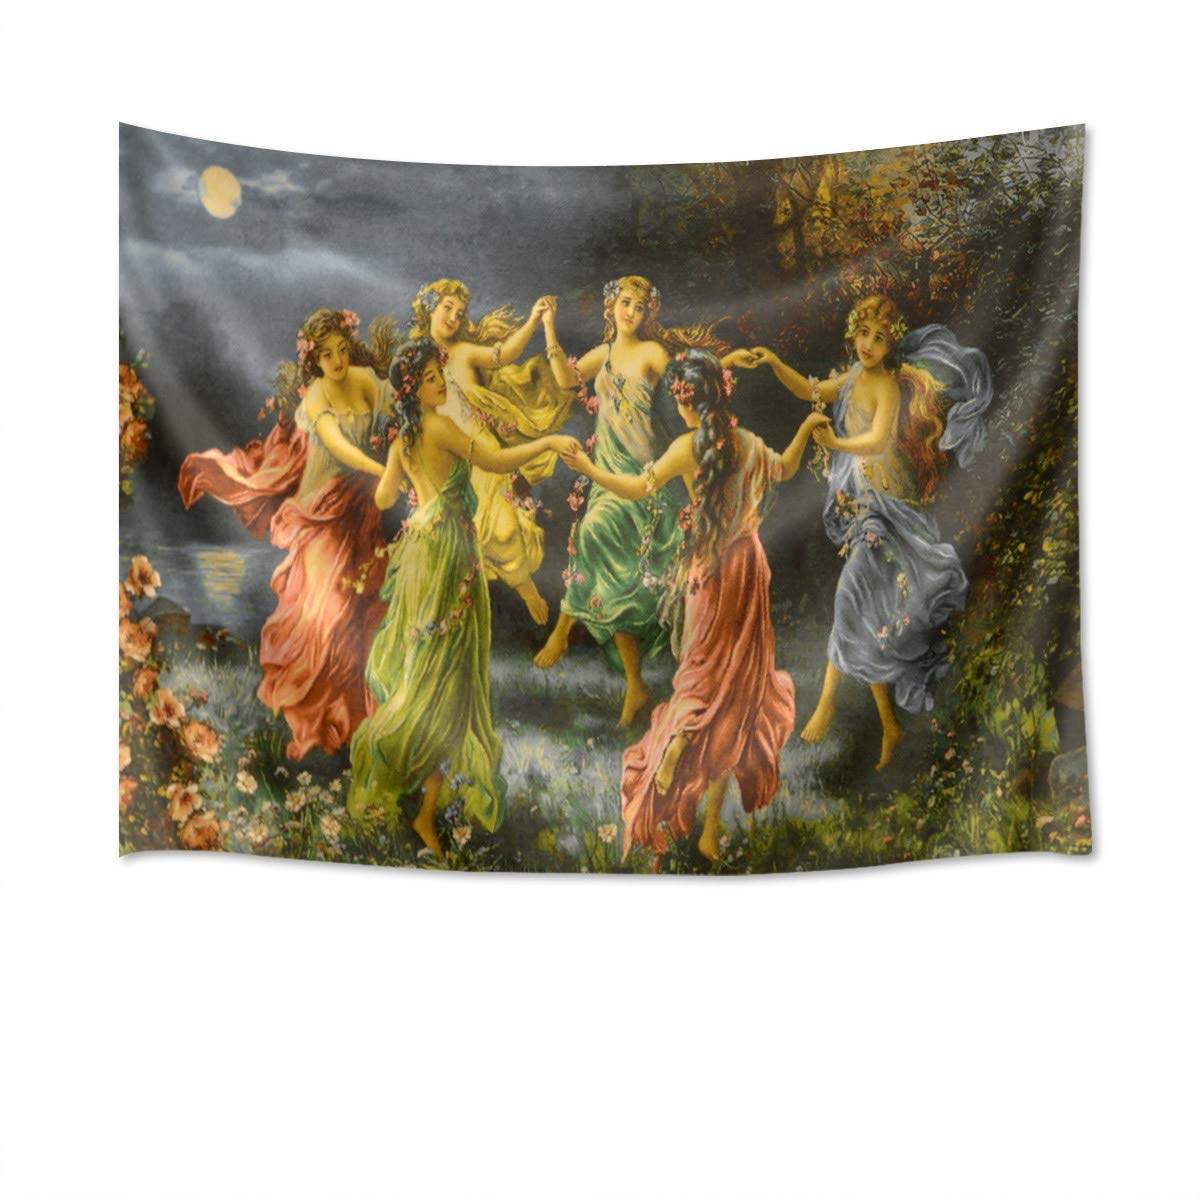 HVEST European Fairy Tapestry Greek Goddess Wall Decor Royal Court Six Skirt Girls Dancing Wall Painting Renaissance Romanticism Backdrop for Room Home Decor Photography Background 60Wx40H inches